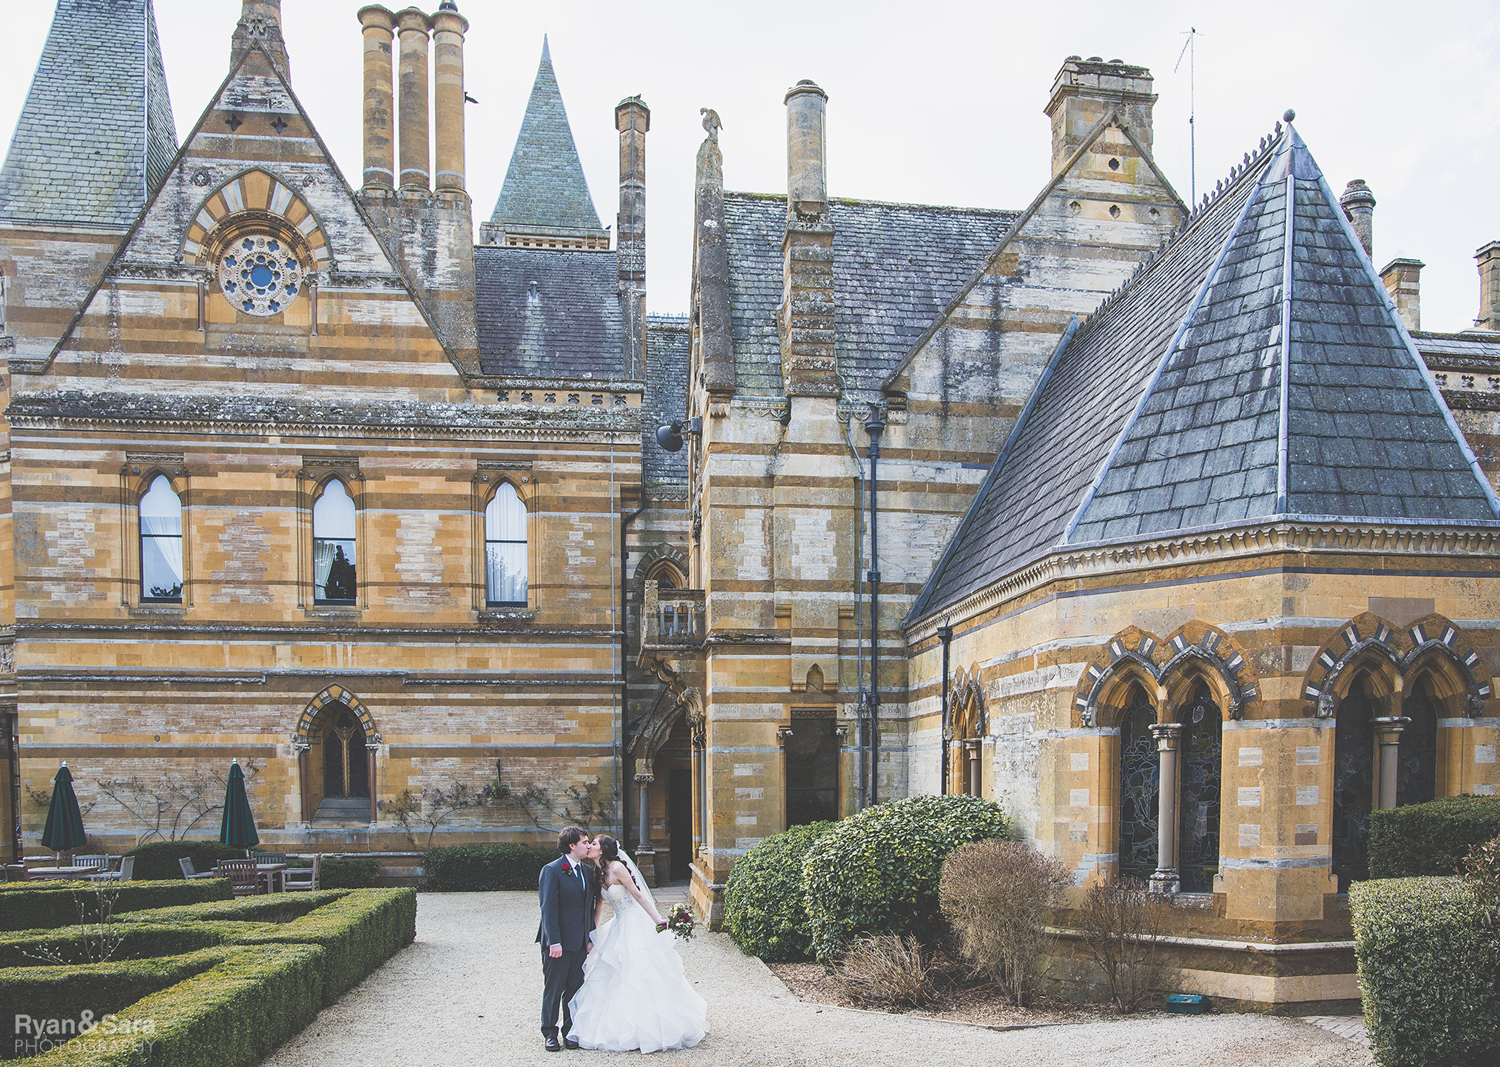 ettington park hotel, spring wedding